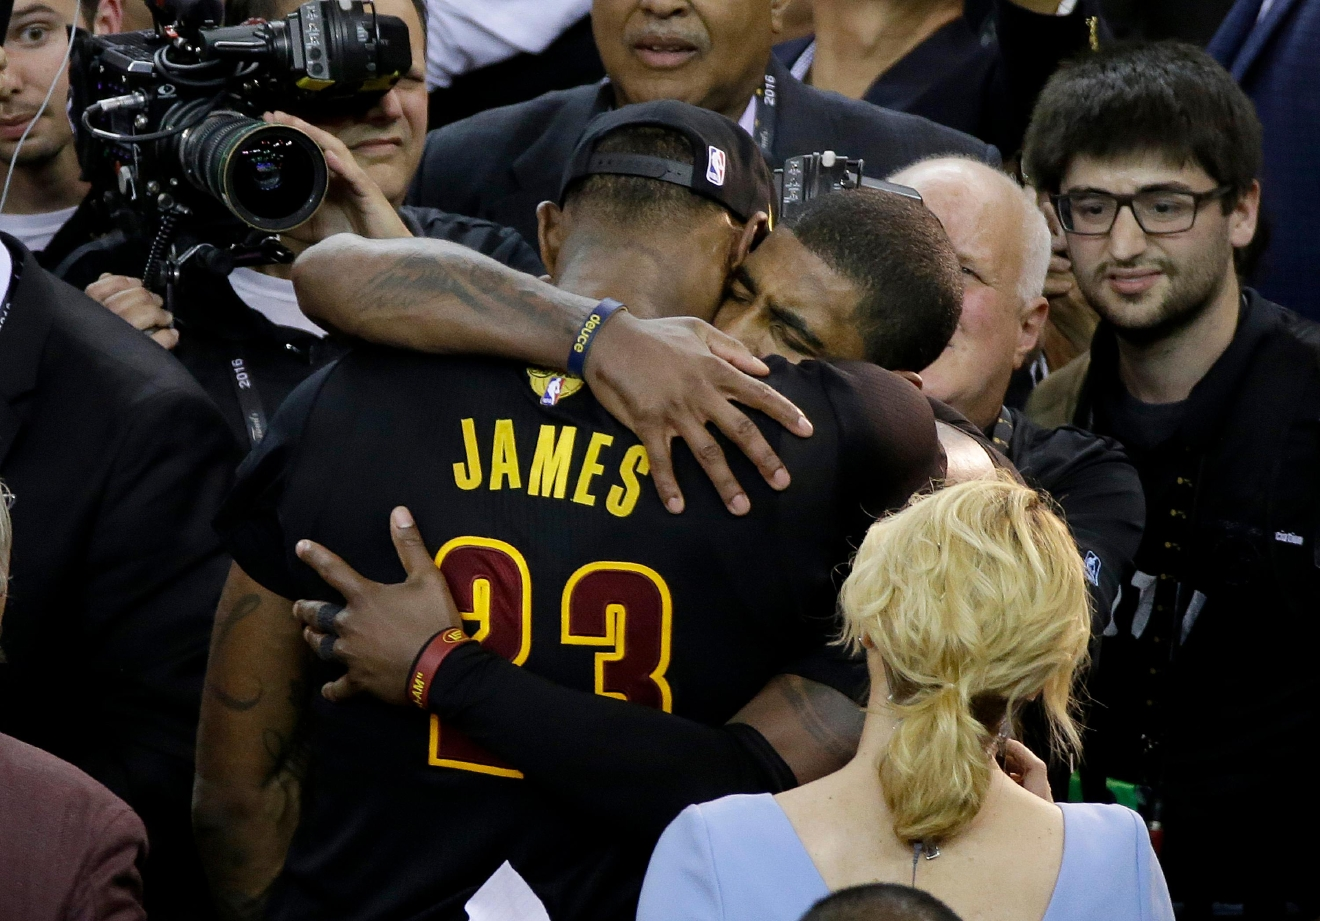 Cleveland Cavaliers forward LeBron James (23) hugs Kyrie Irving after Game 7 of basketball's NBA Finals against the Golden State Warriors in Oakland, Calif., Sunday, June 19, 2016. The Cavaliers won 93-89. (AP Photo/Eric Risberg)